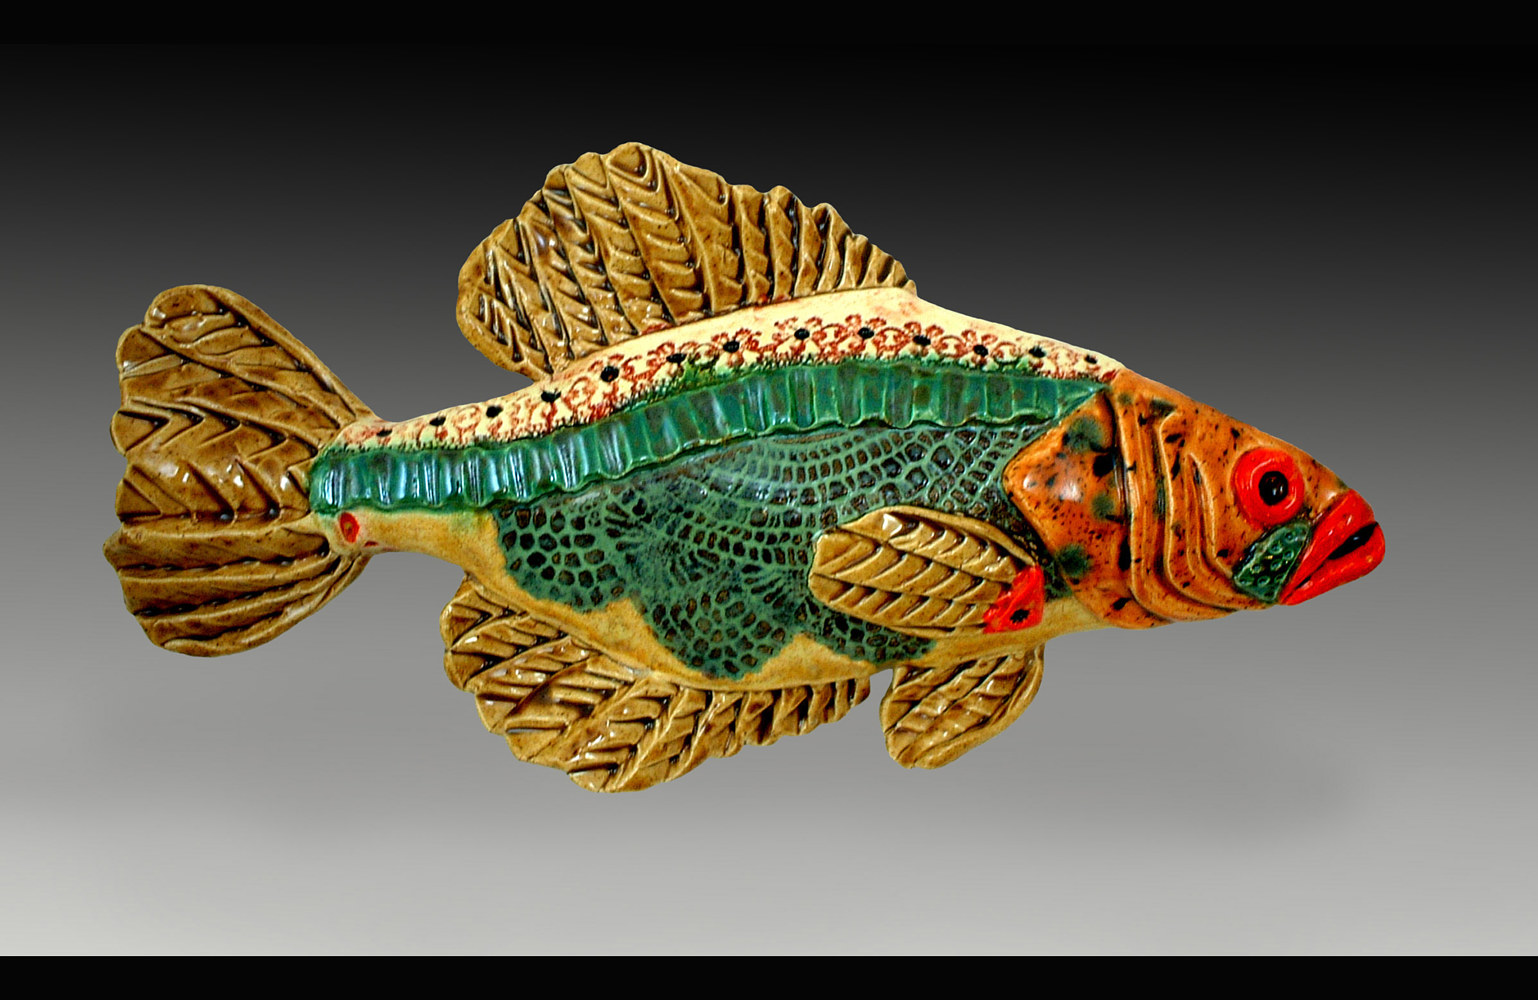 Crappie by Cathy Crain